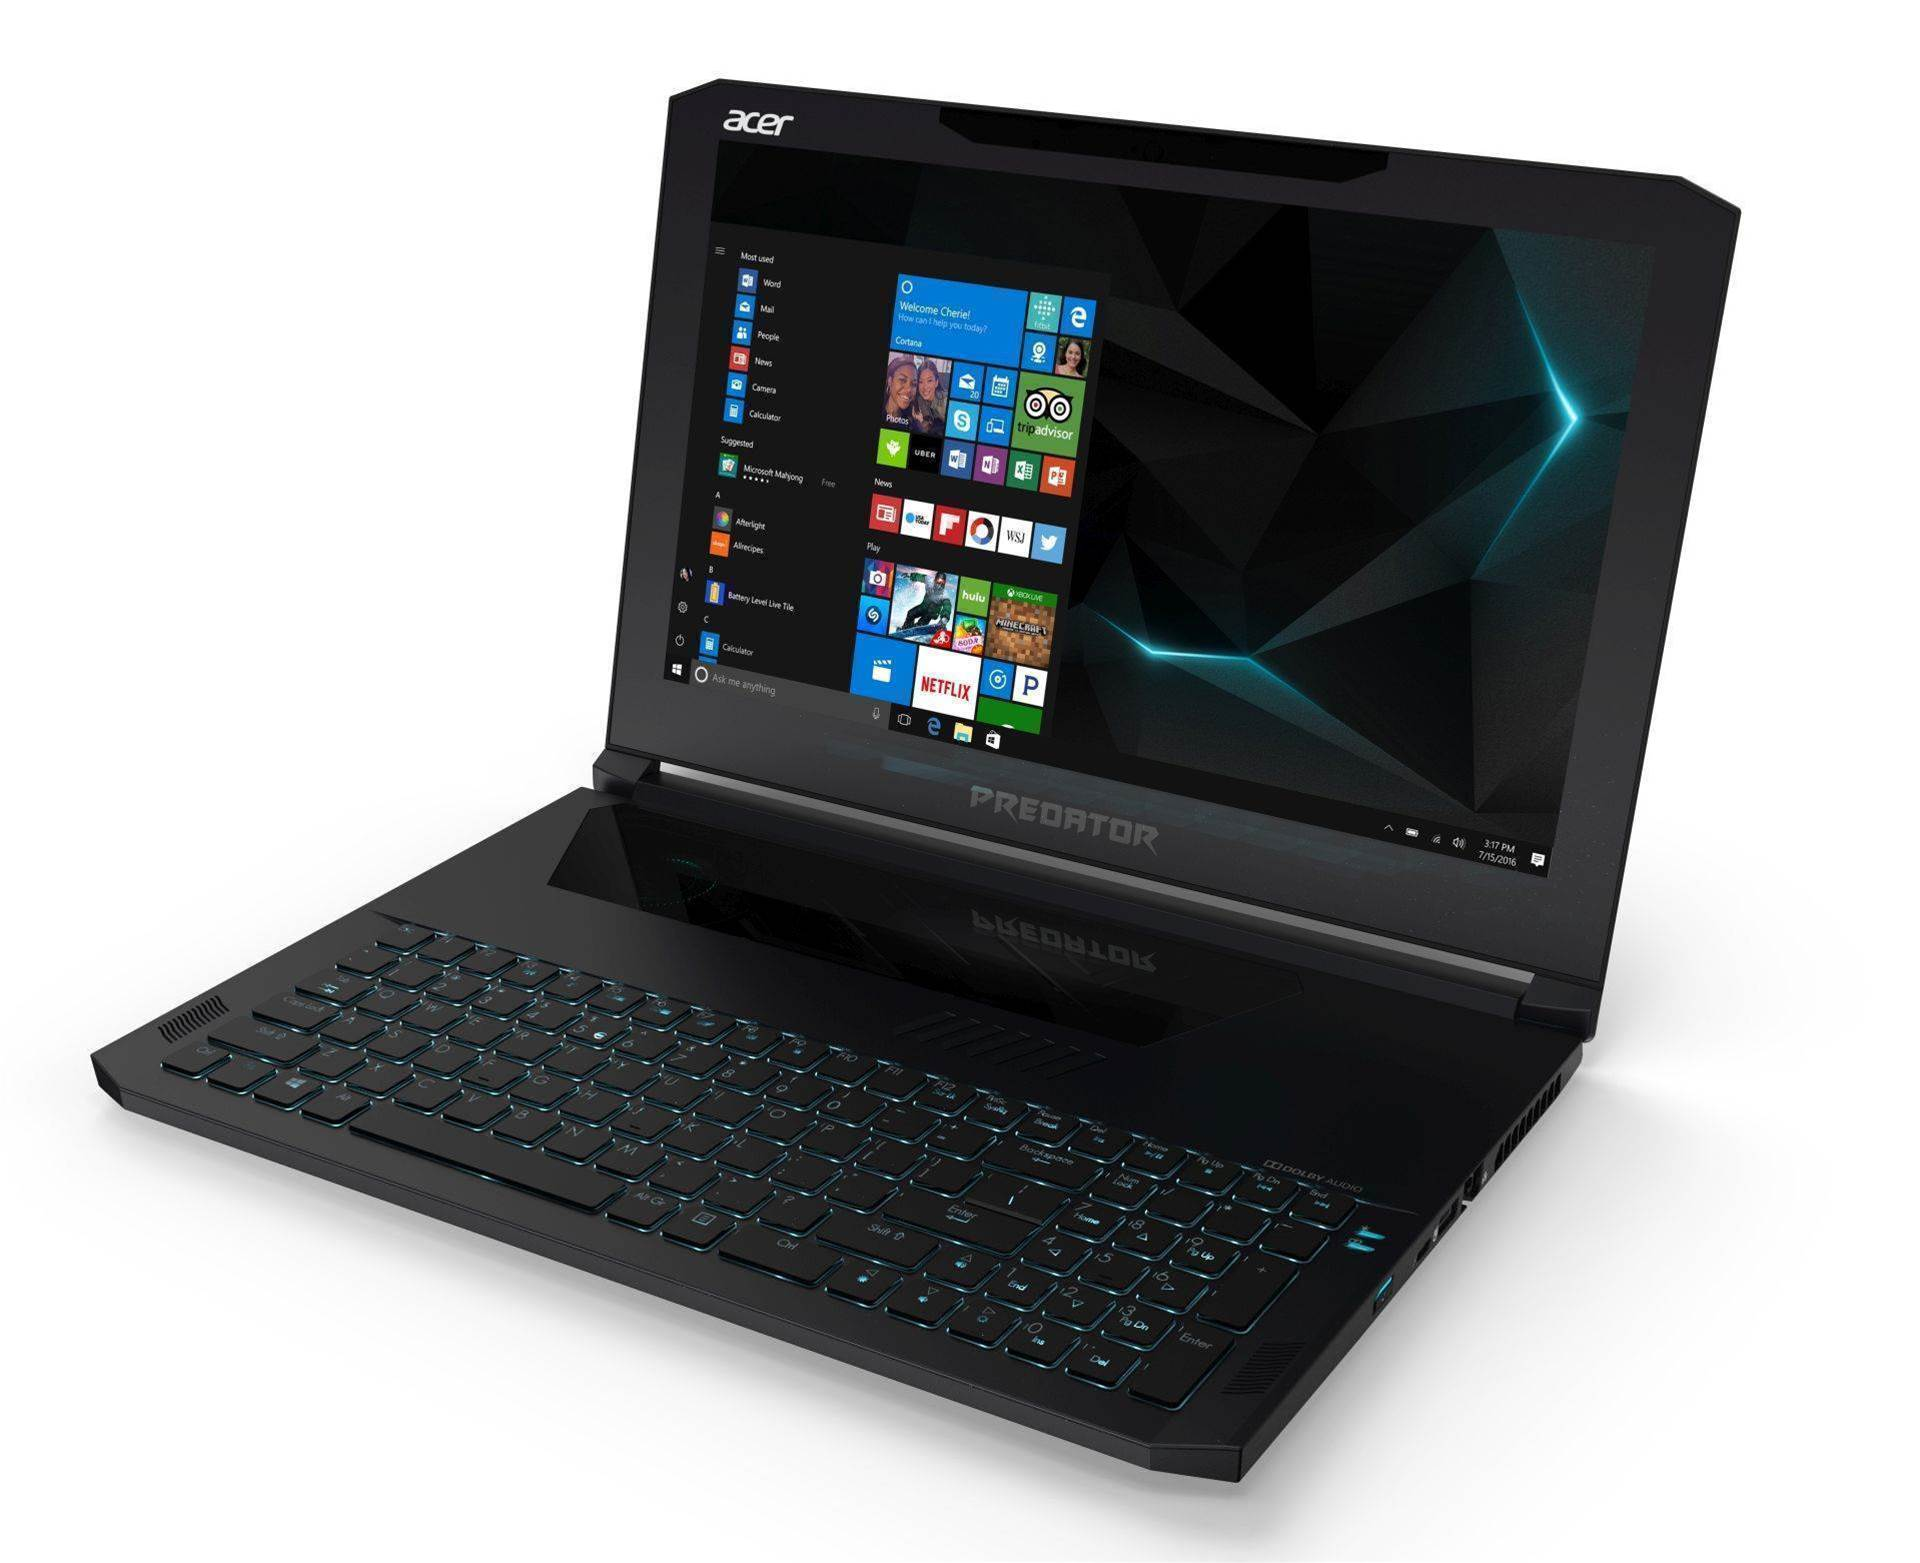 Review: Acer Predator Triton gaming laptop